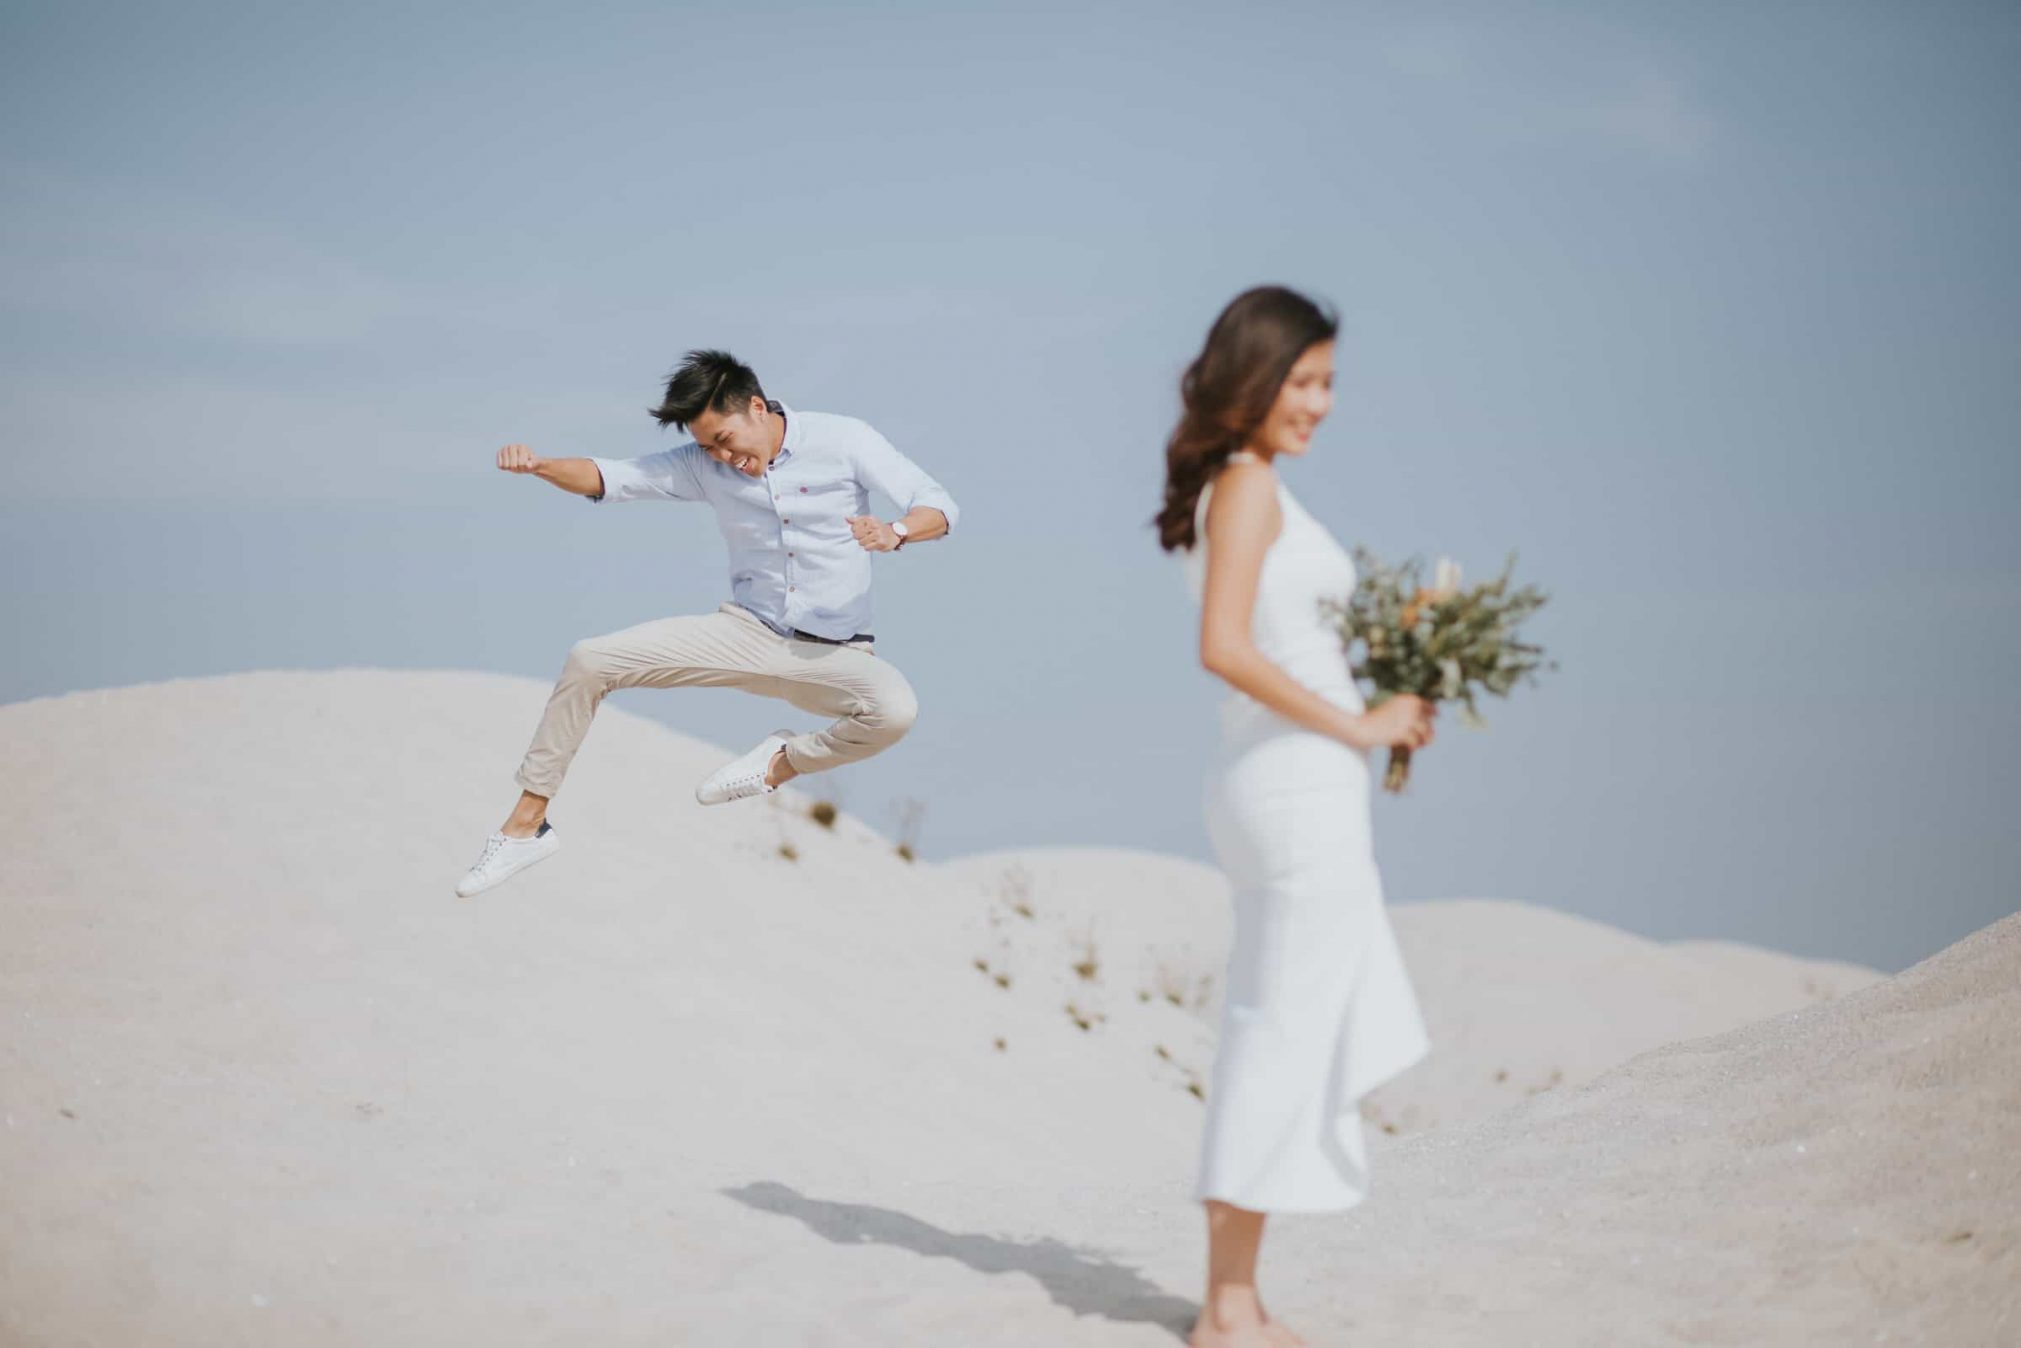 cliff choong destination portrait and wedding photographer malaysia kuala lumpur prewedding sunset golden sunrise shots bride and groom melaka desert couple kiss romantic intimate moment scene sands